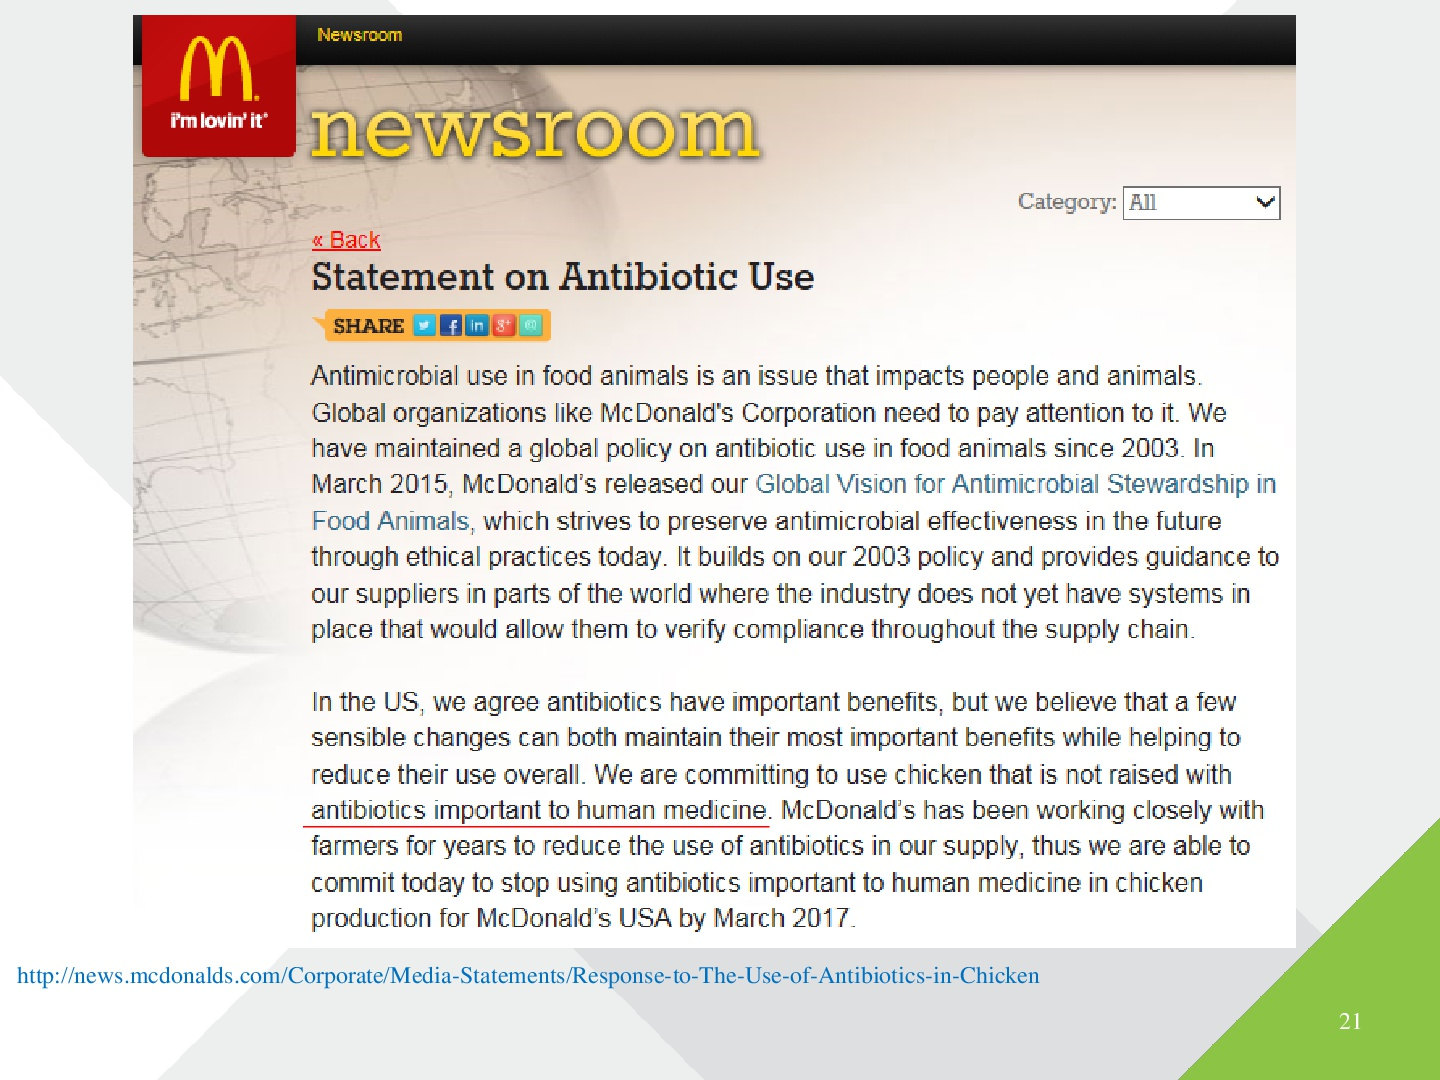 Global-overview-on-antibiotic-use-policy-in-veterinary-medicine-021_1512374222.jpg